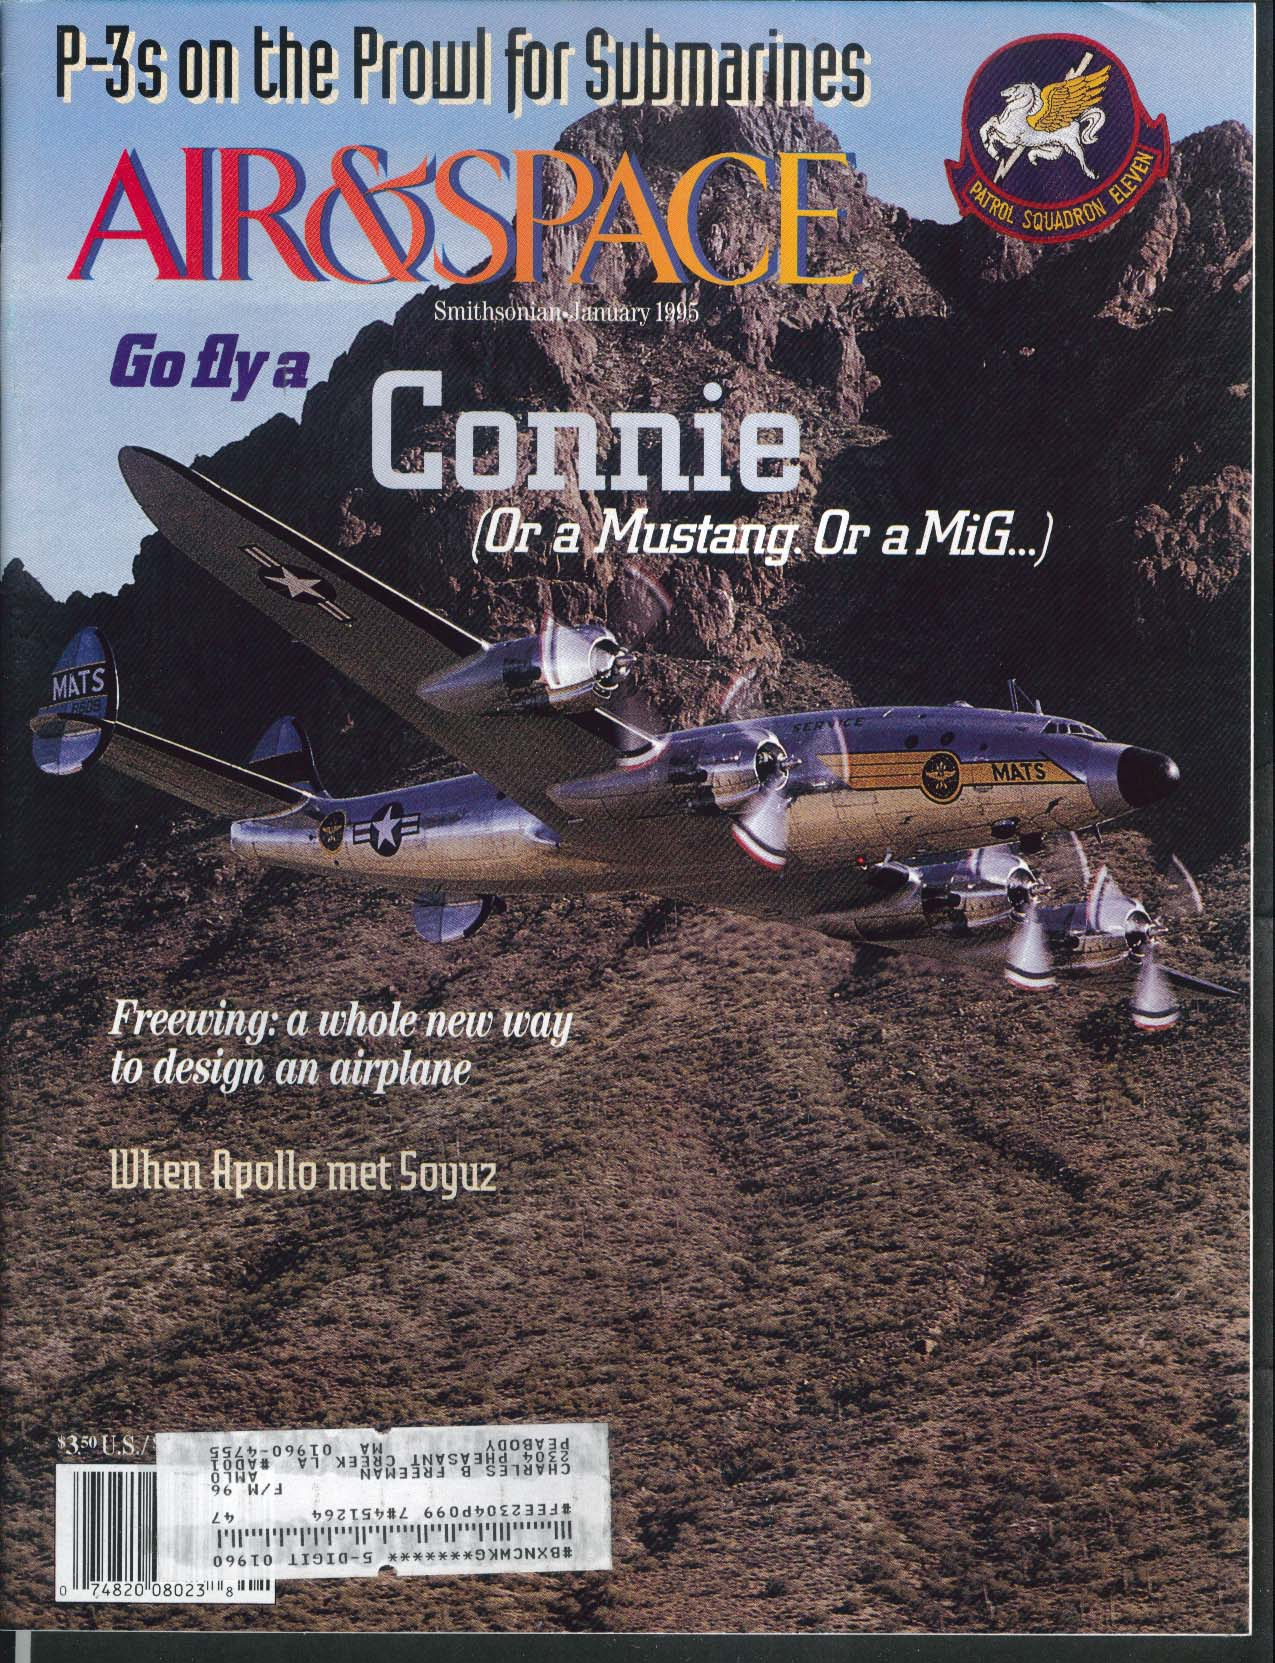 AIR & SPACE Smithsonian Constellation Mustang MiG Apollo Soyuz P-3 Spratt 1 1995